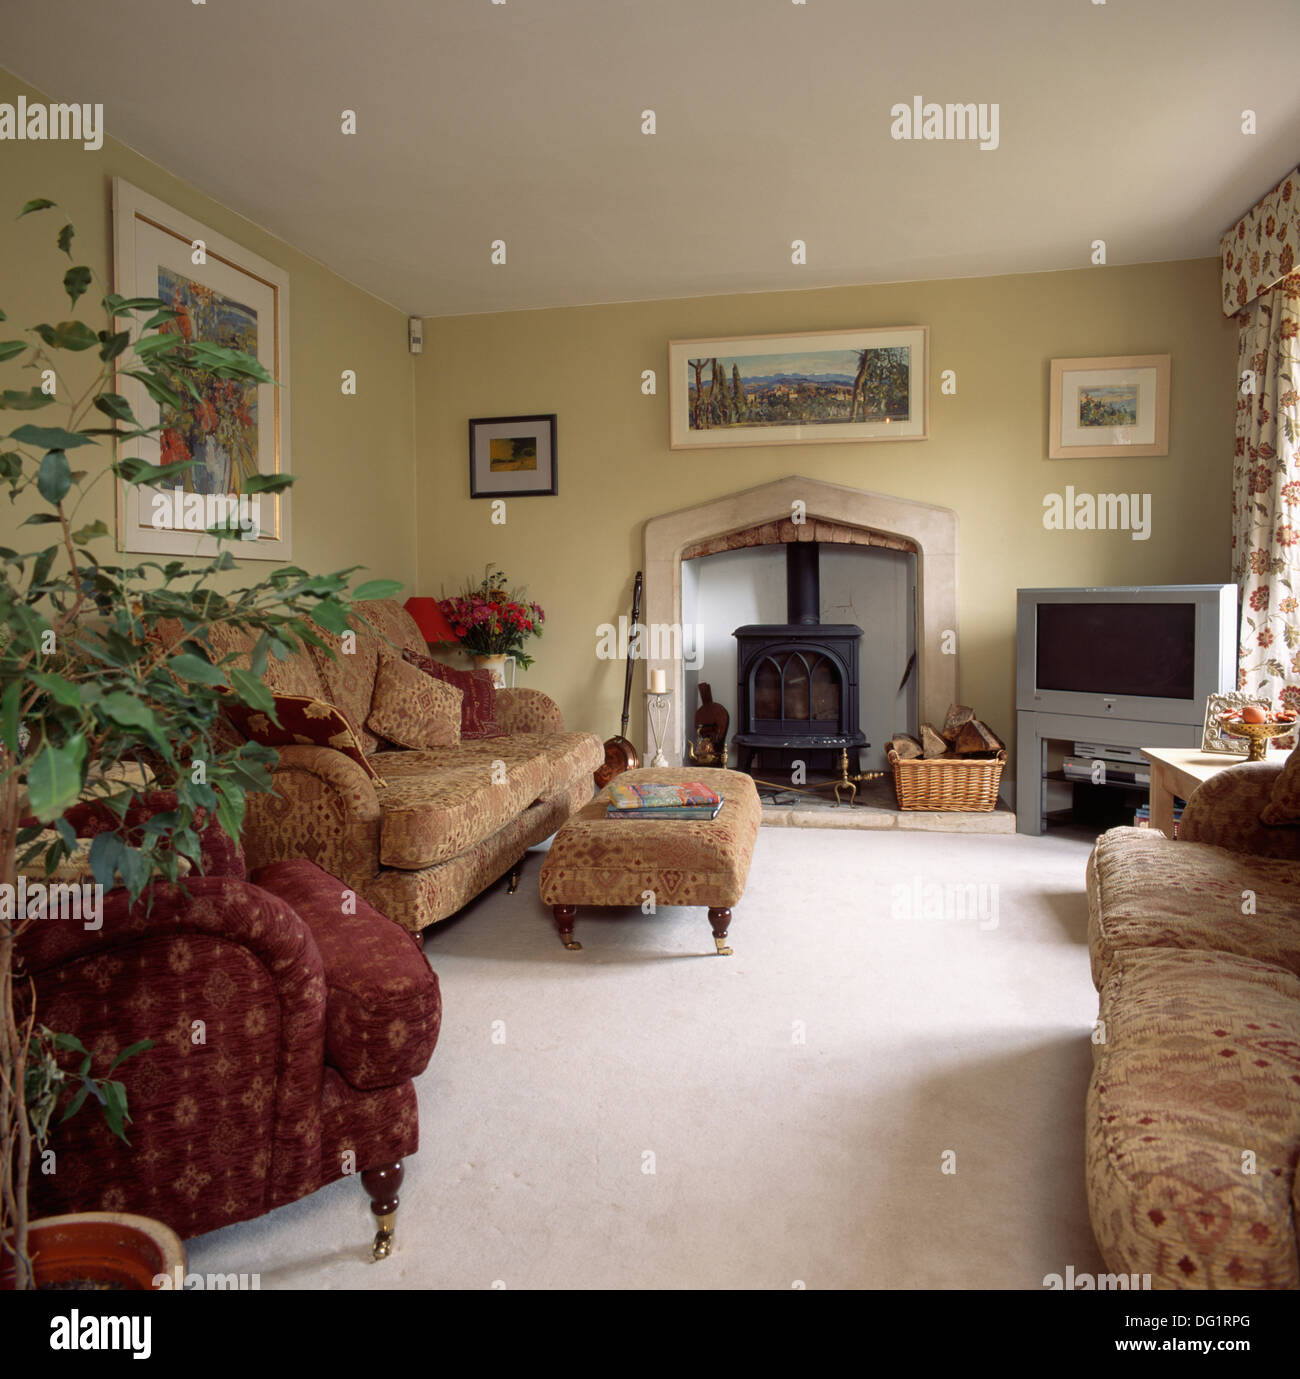 Cream carpet and neutral patterned sofas in country living room ...